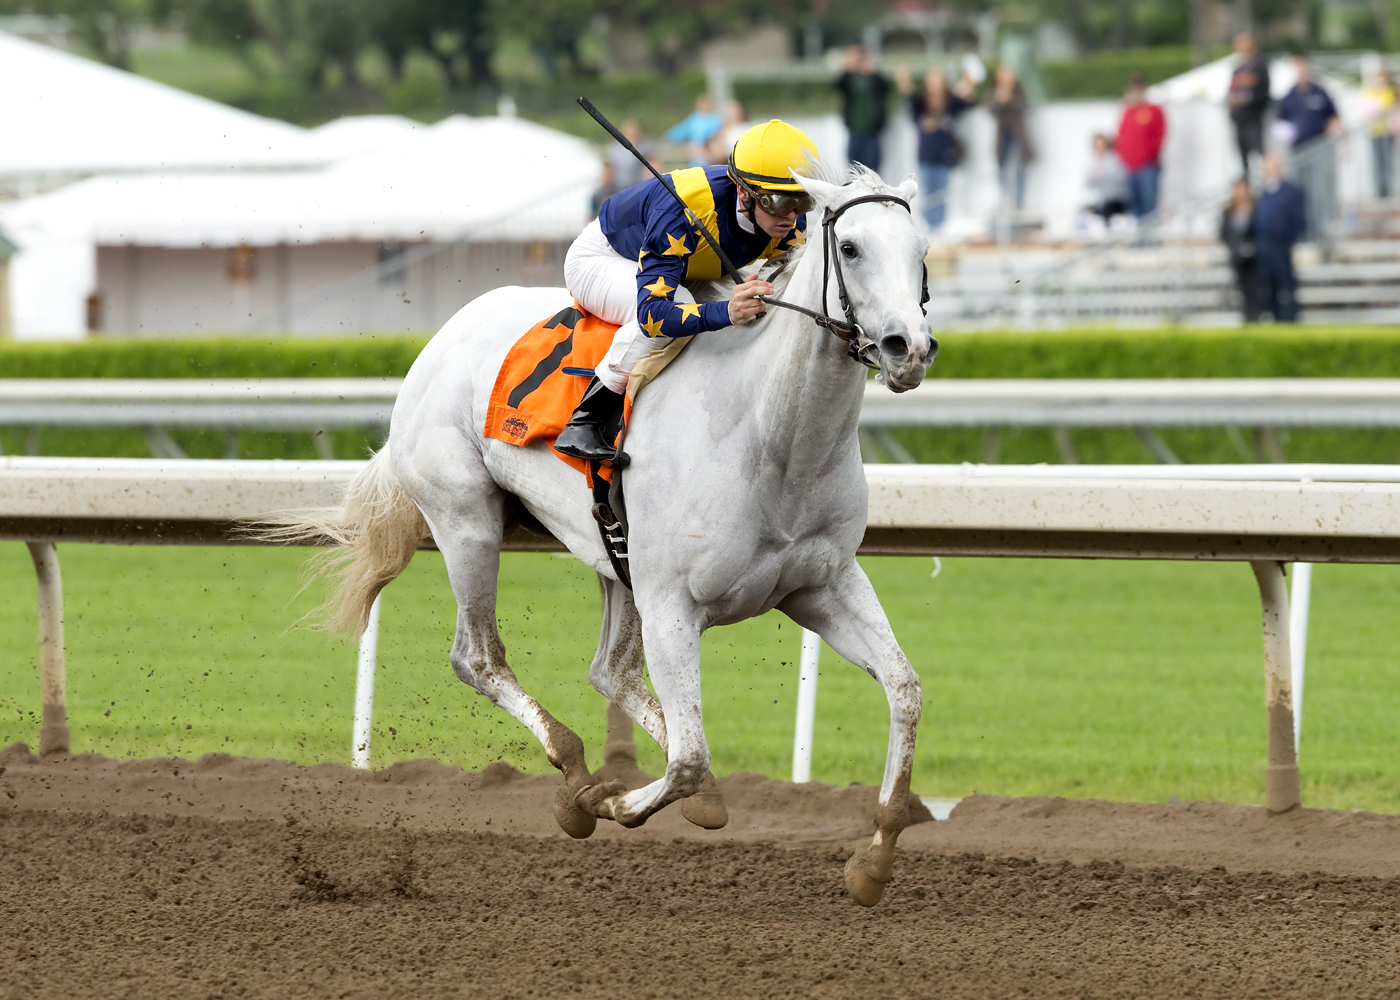 In this image provided by Benoit Photo, LNJ Foxwoods' Dreamologist and jockey Flavien Prat win the Grade III, $100,000 Las Cienegas Stakes, Sunday, April 10, 2016 at Santa Anita Park, Arcadia, Calif. (Benoit Photo via AP)